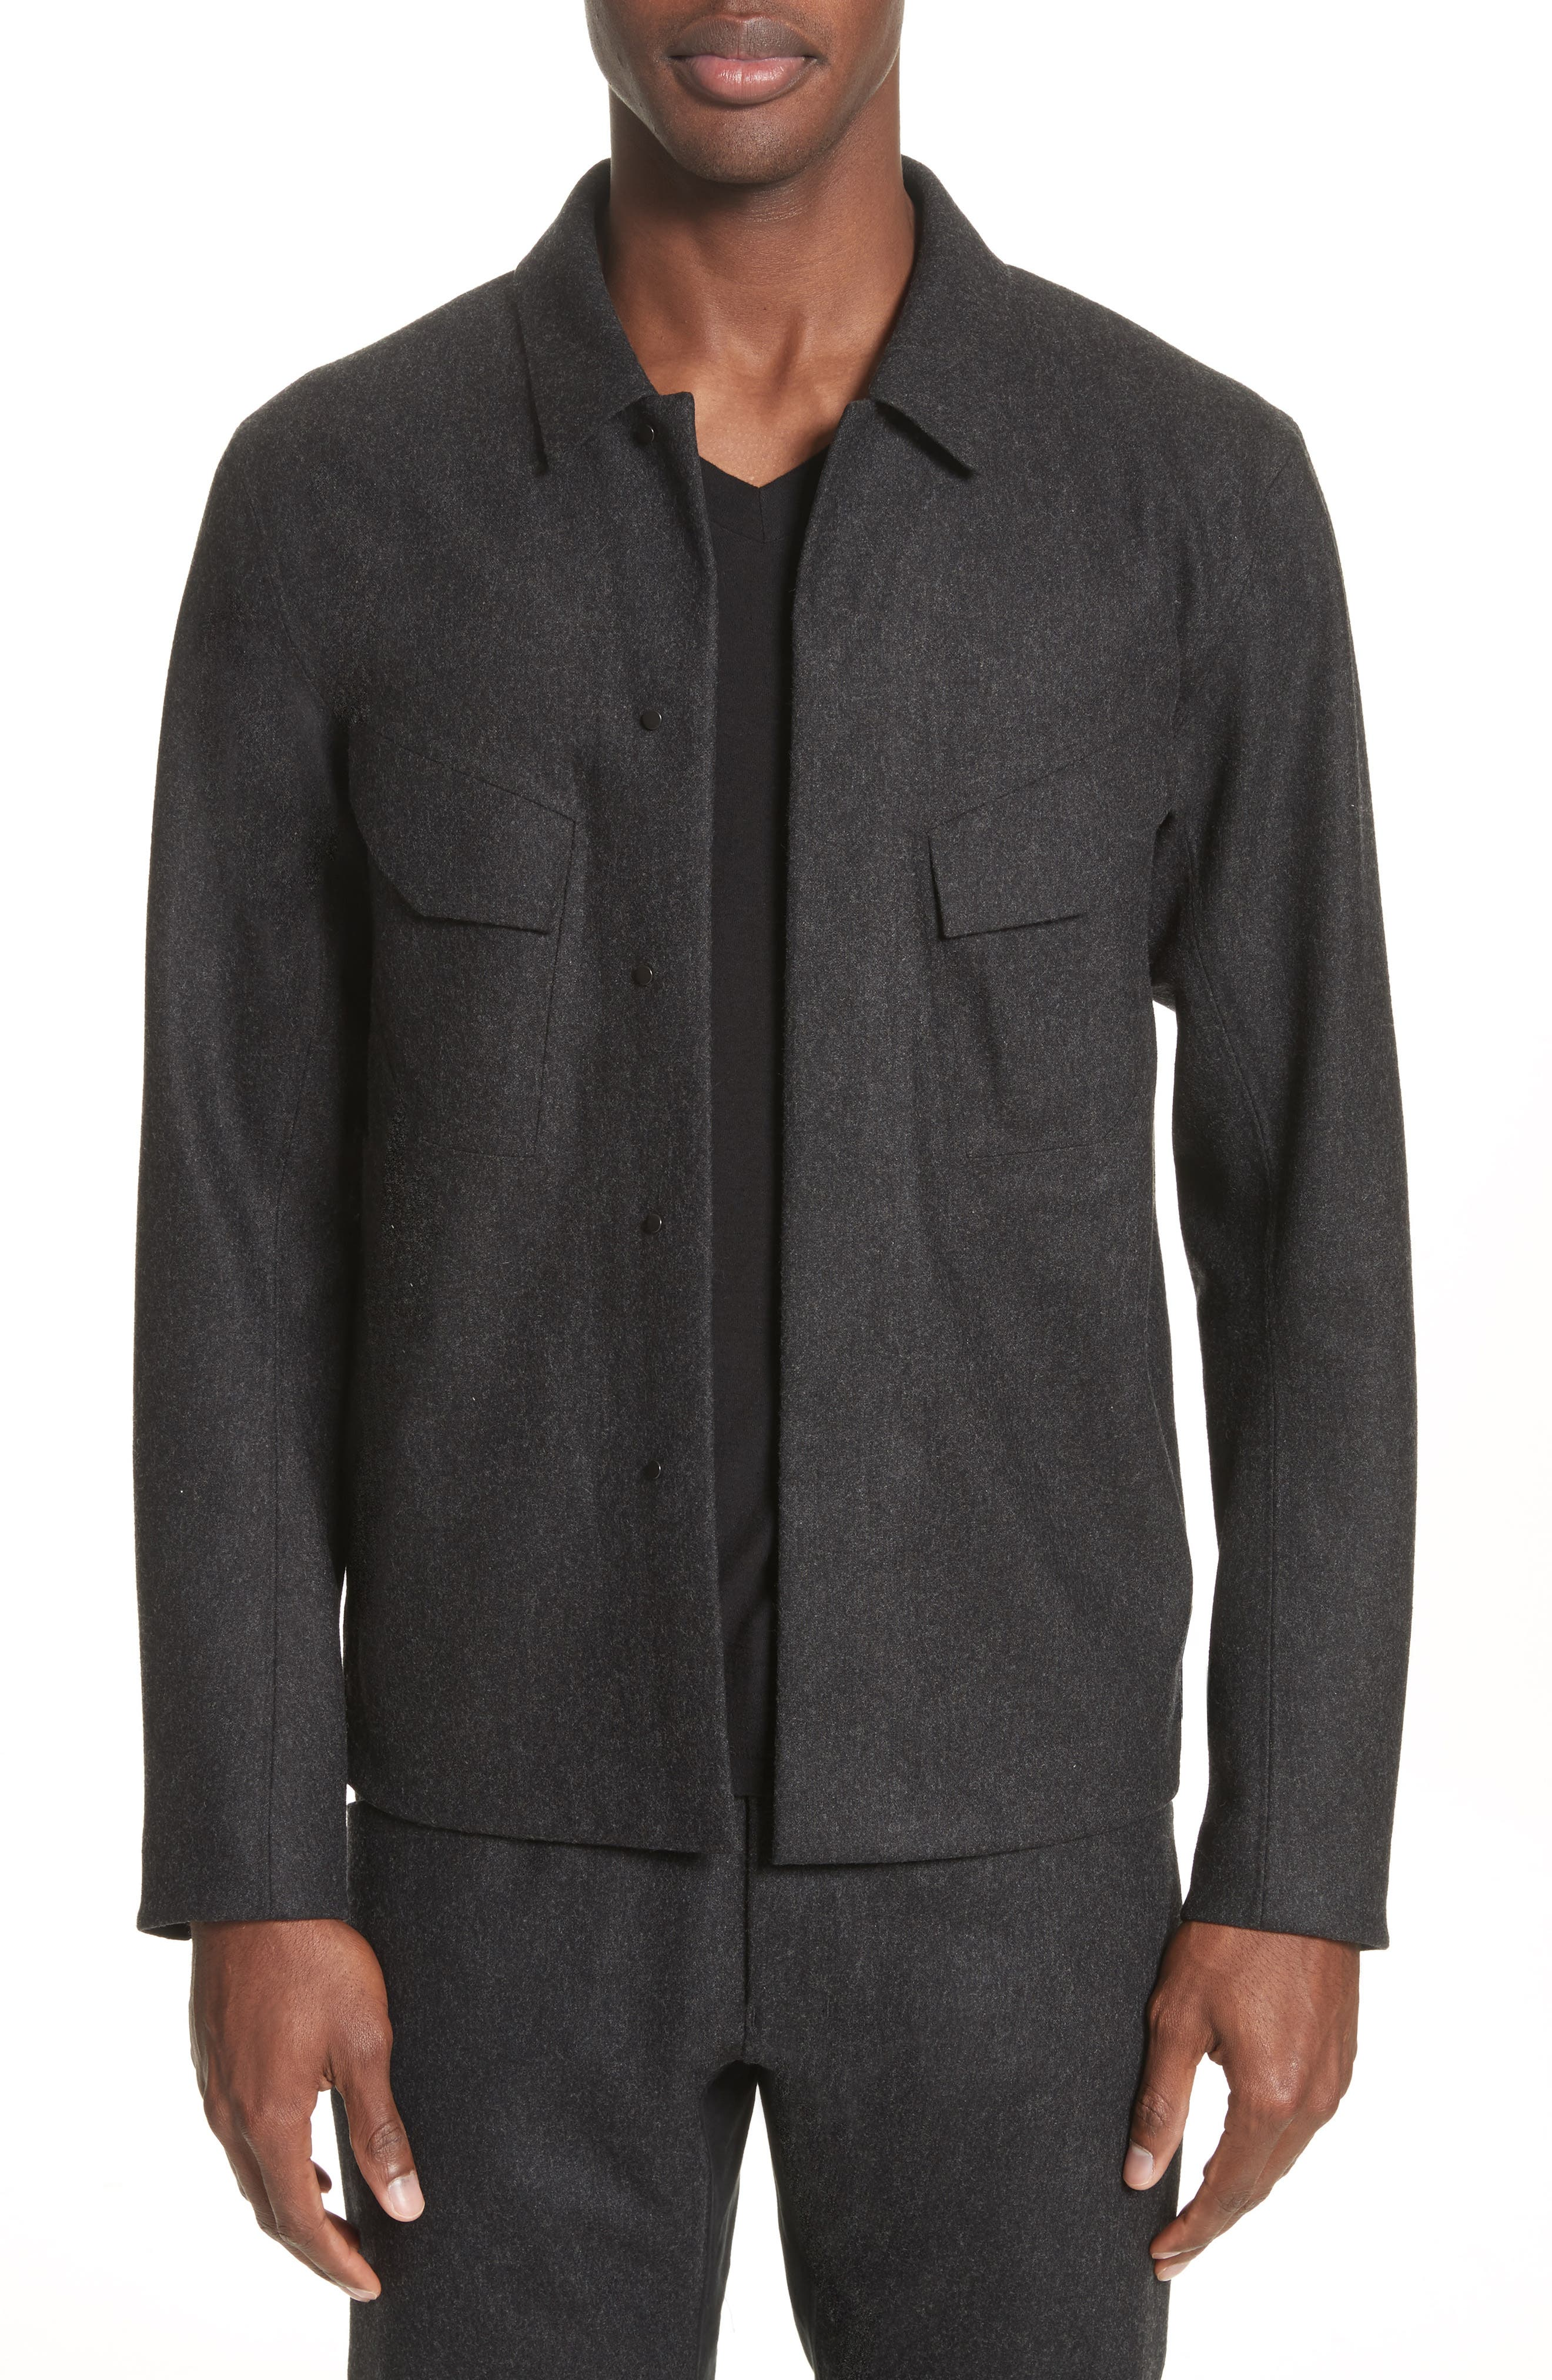 Haedn Shirt Jacket,                         Main,                         color, Black Heather